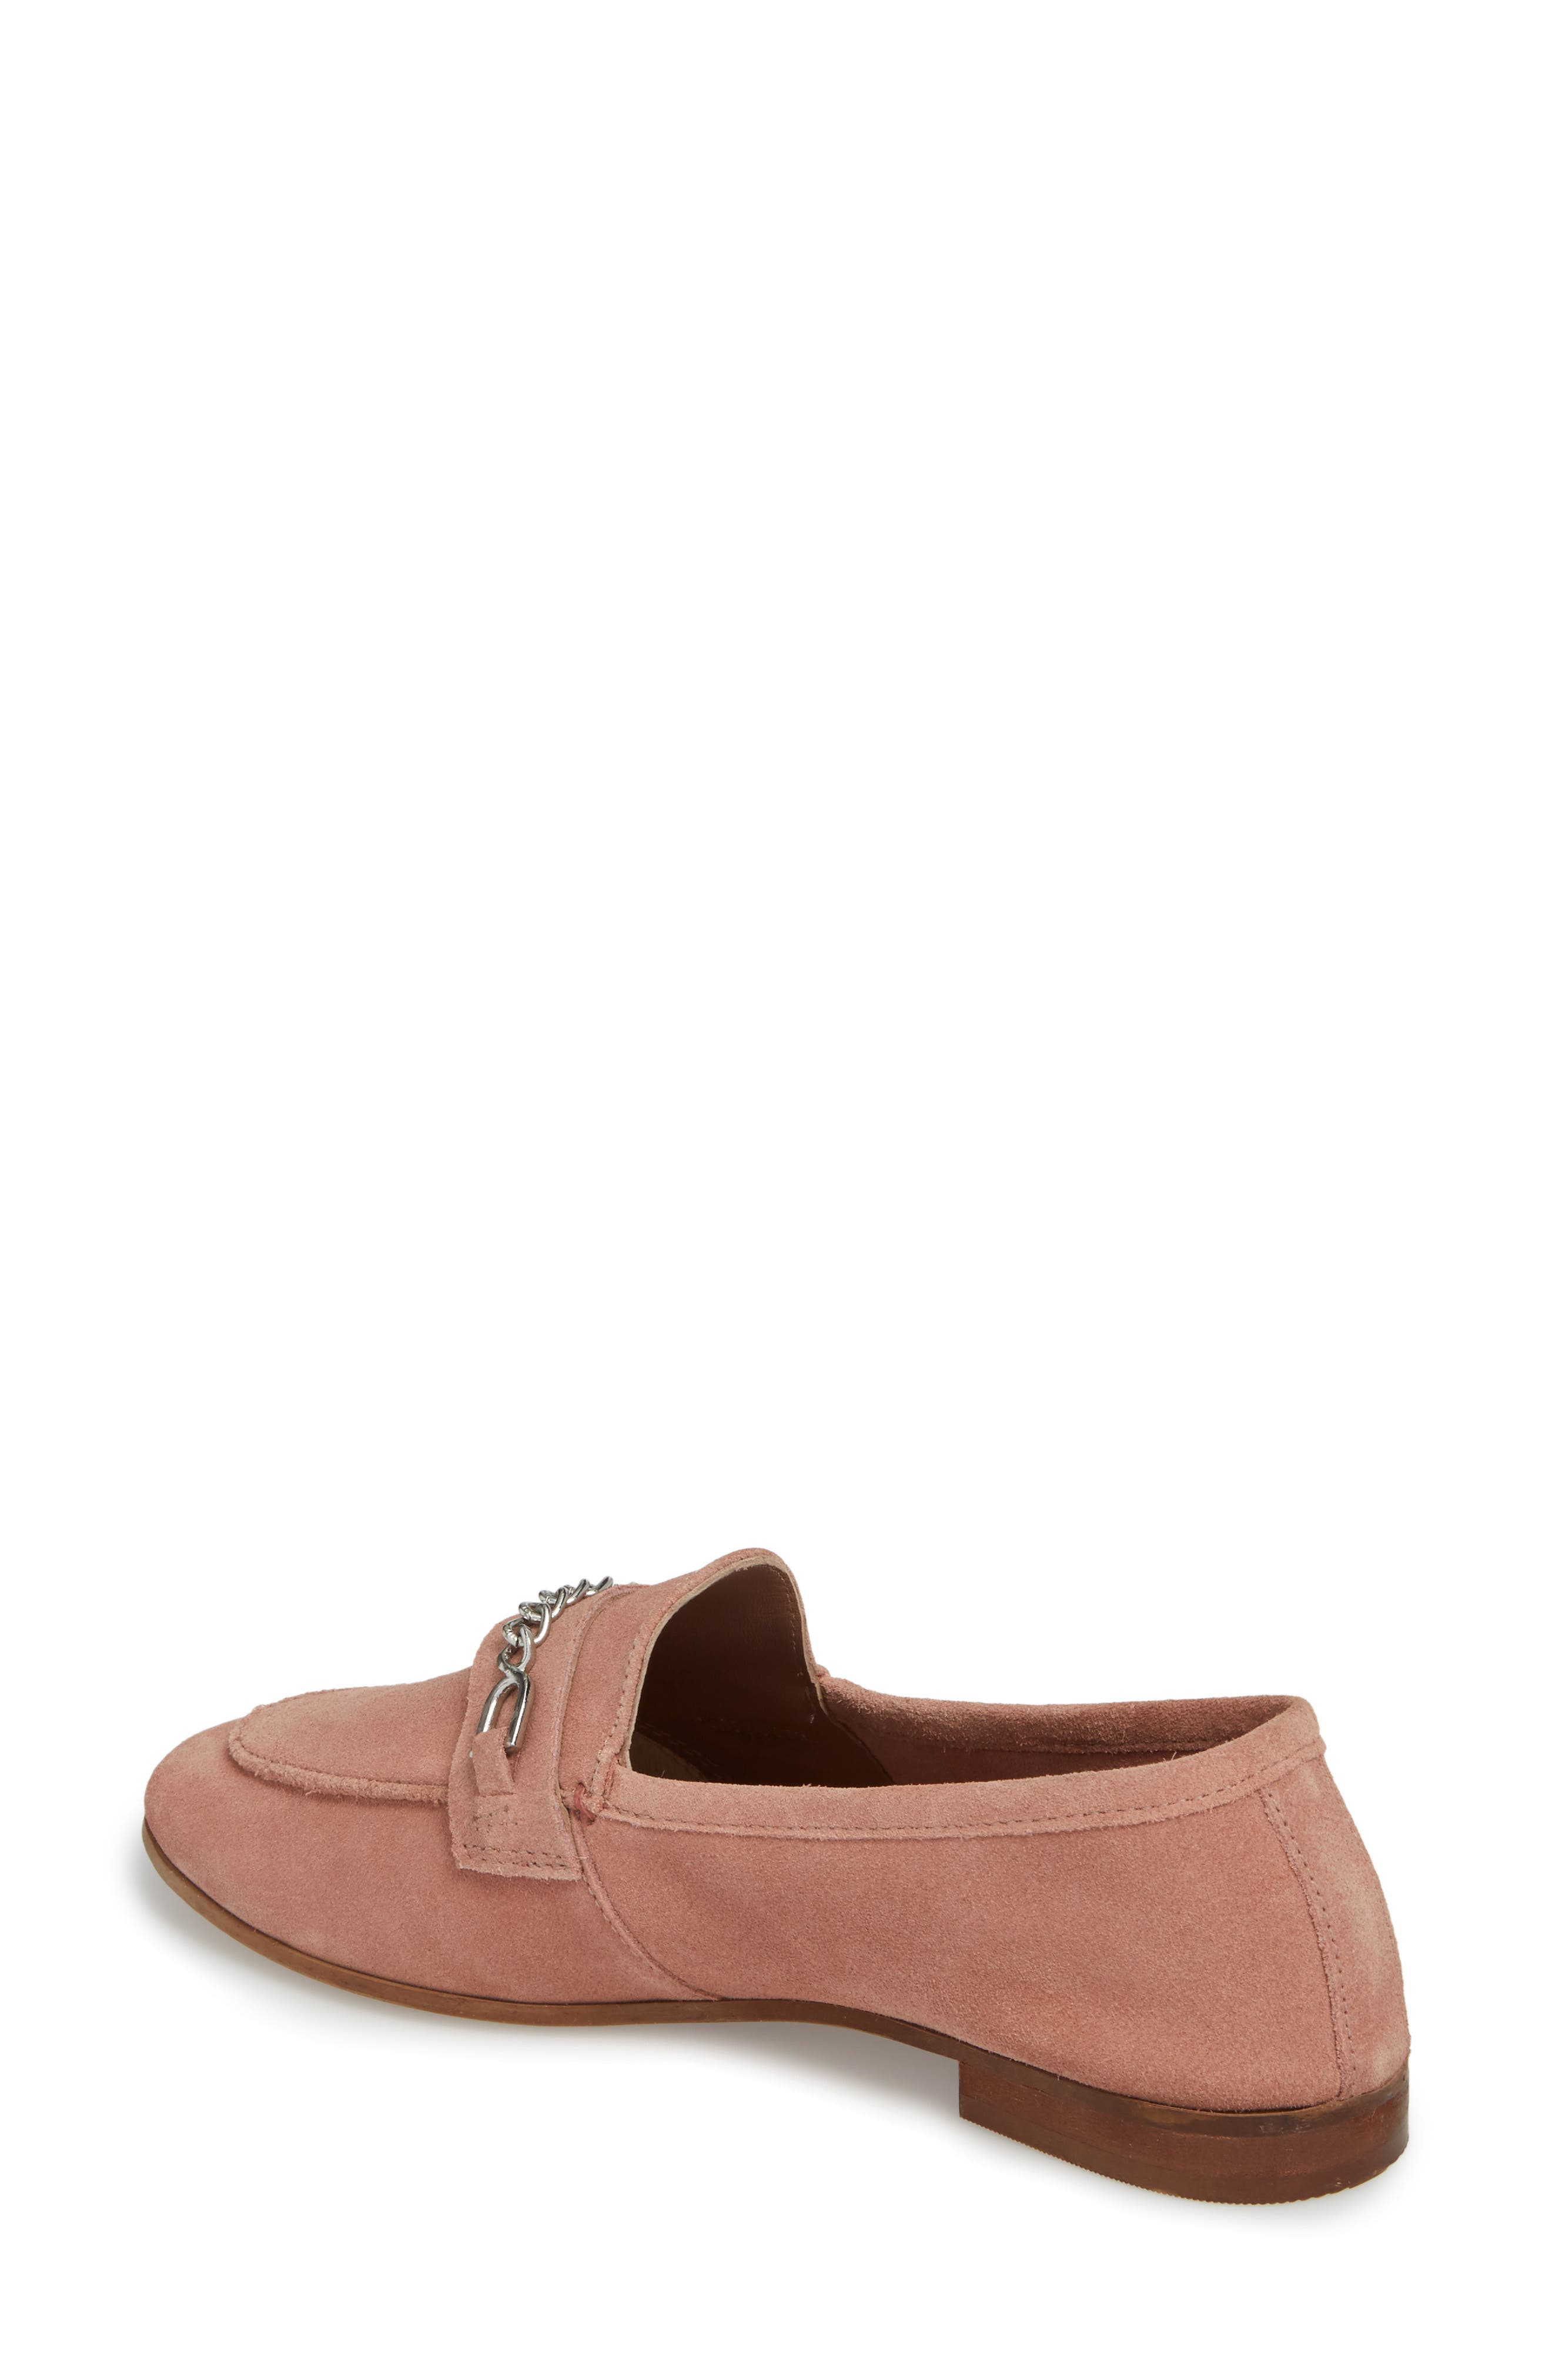 Key Trim Chain Loafer,                             Alternate thumbnail 2, color,                             Pink Multi